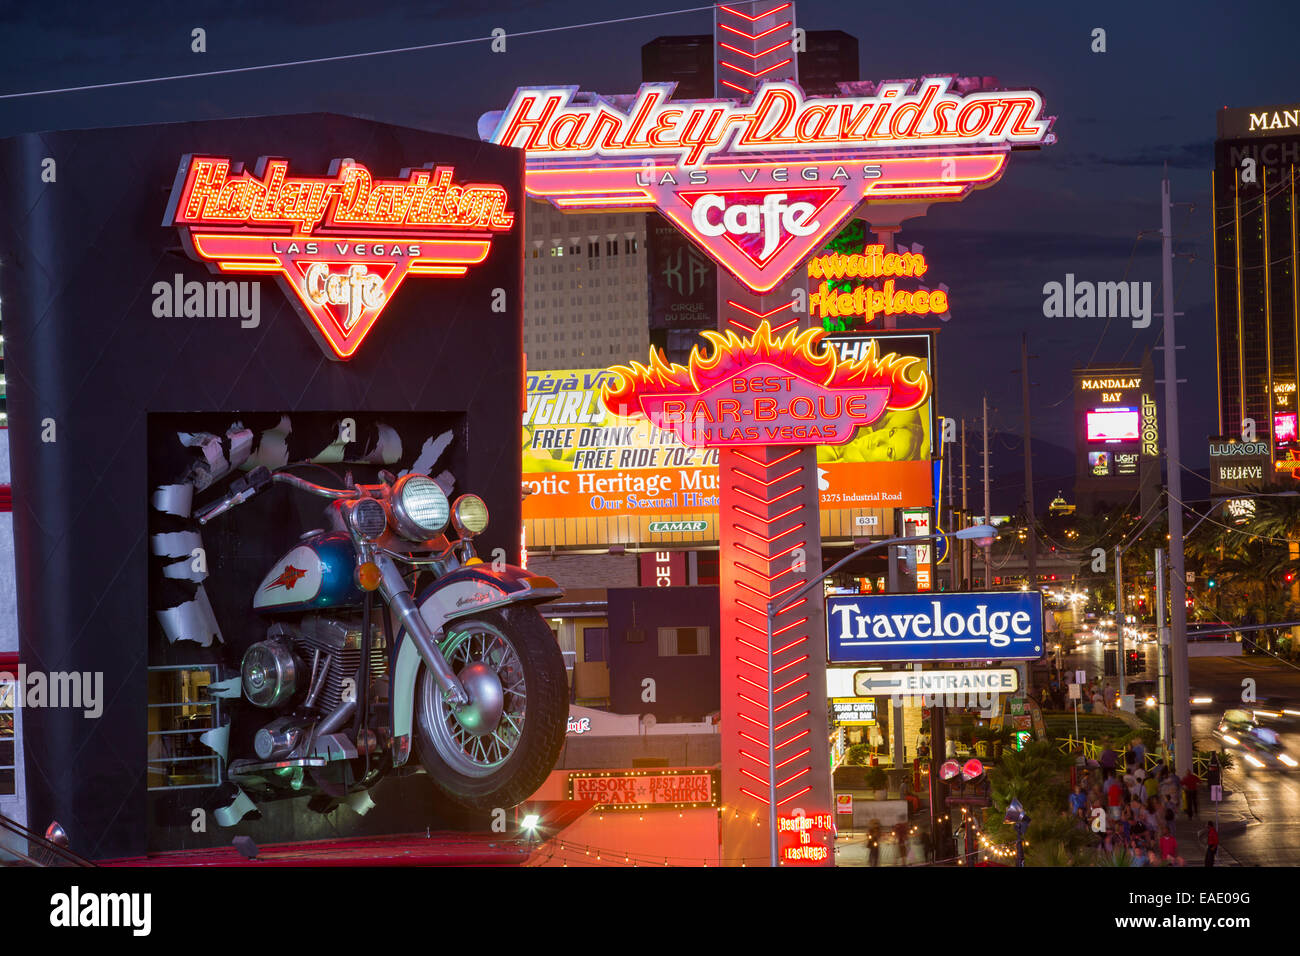 The Harley Davidson Cafe on Las Vegas boulevard at dusk, Las Vegas, Nevada, USA, probably the most unsustainable - Stock Image